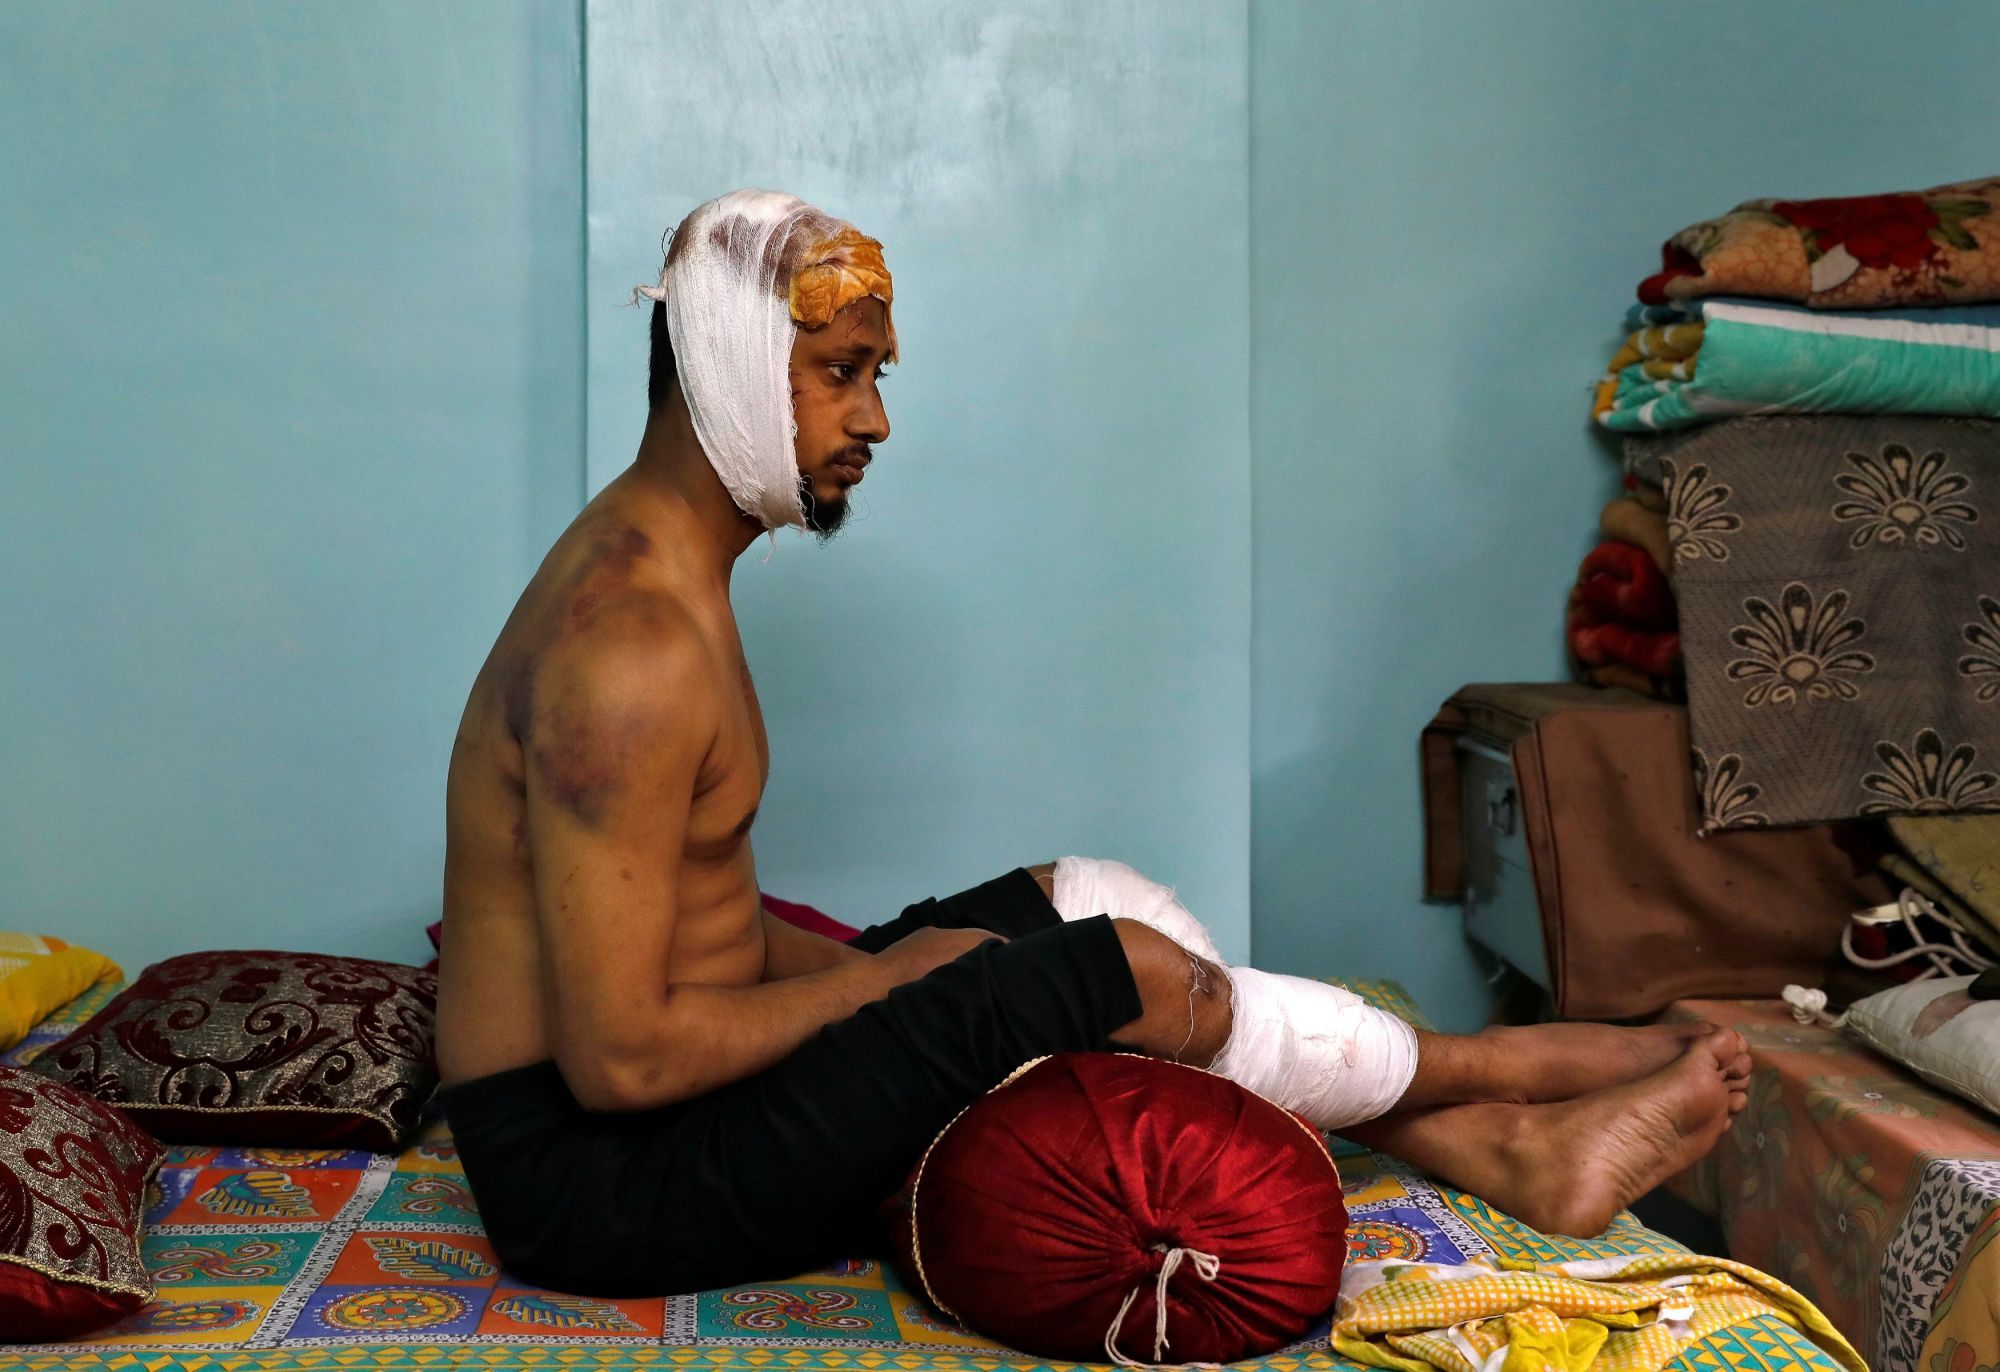 Mohammad Zubair, 37, who is Muslim and was injured after being beaten by a group of men chanting pro-Hindu slogans during protests sparked by a new citizenship law, shows his bruises inside his relative's house in New Delhi Wednesday. | REUTERS